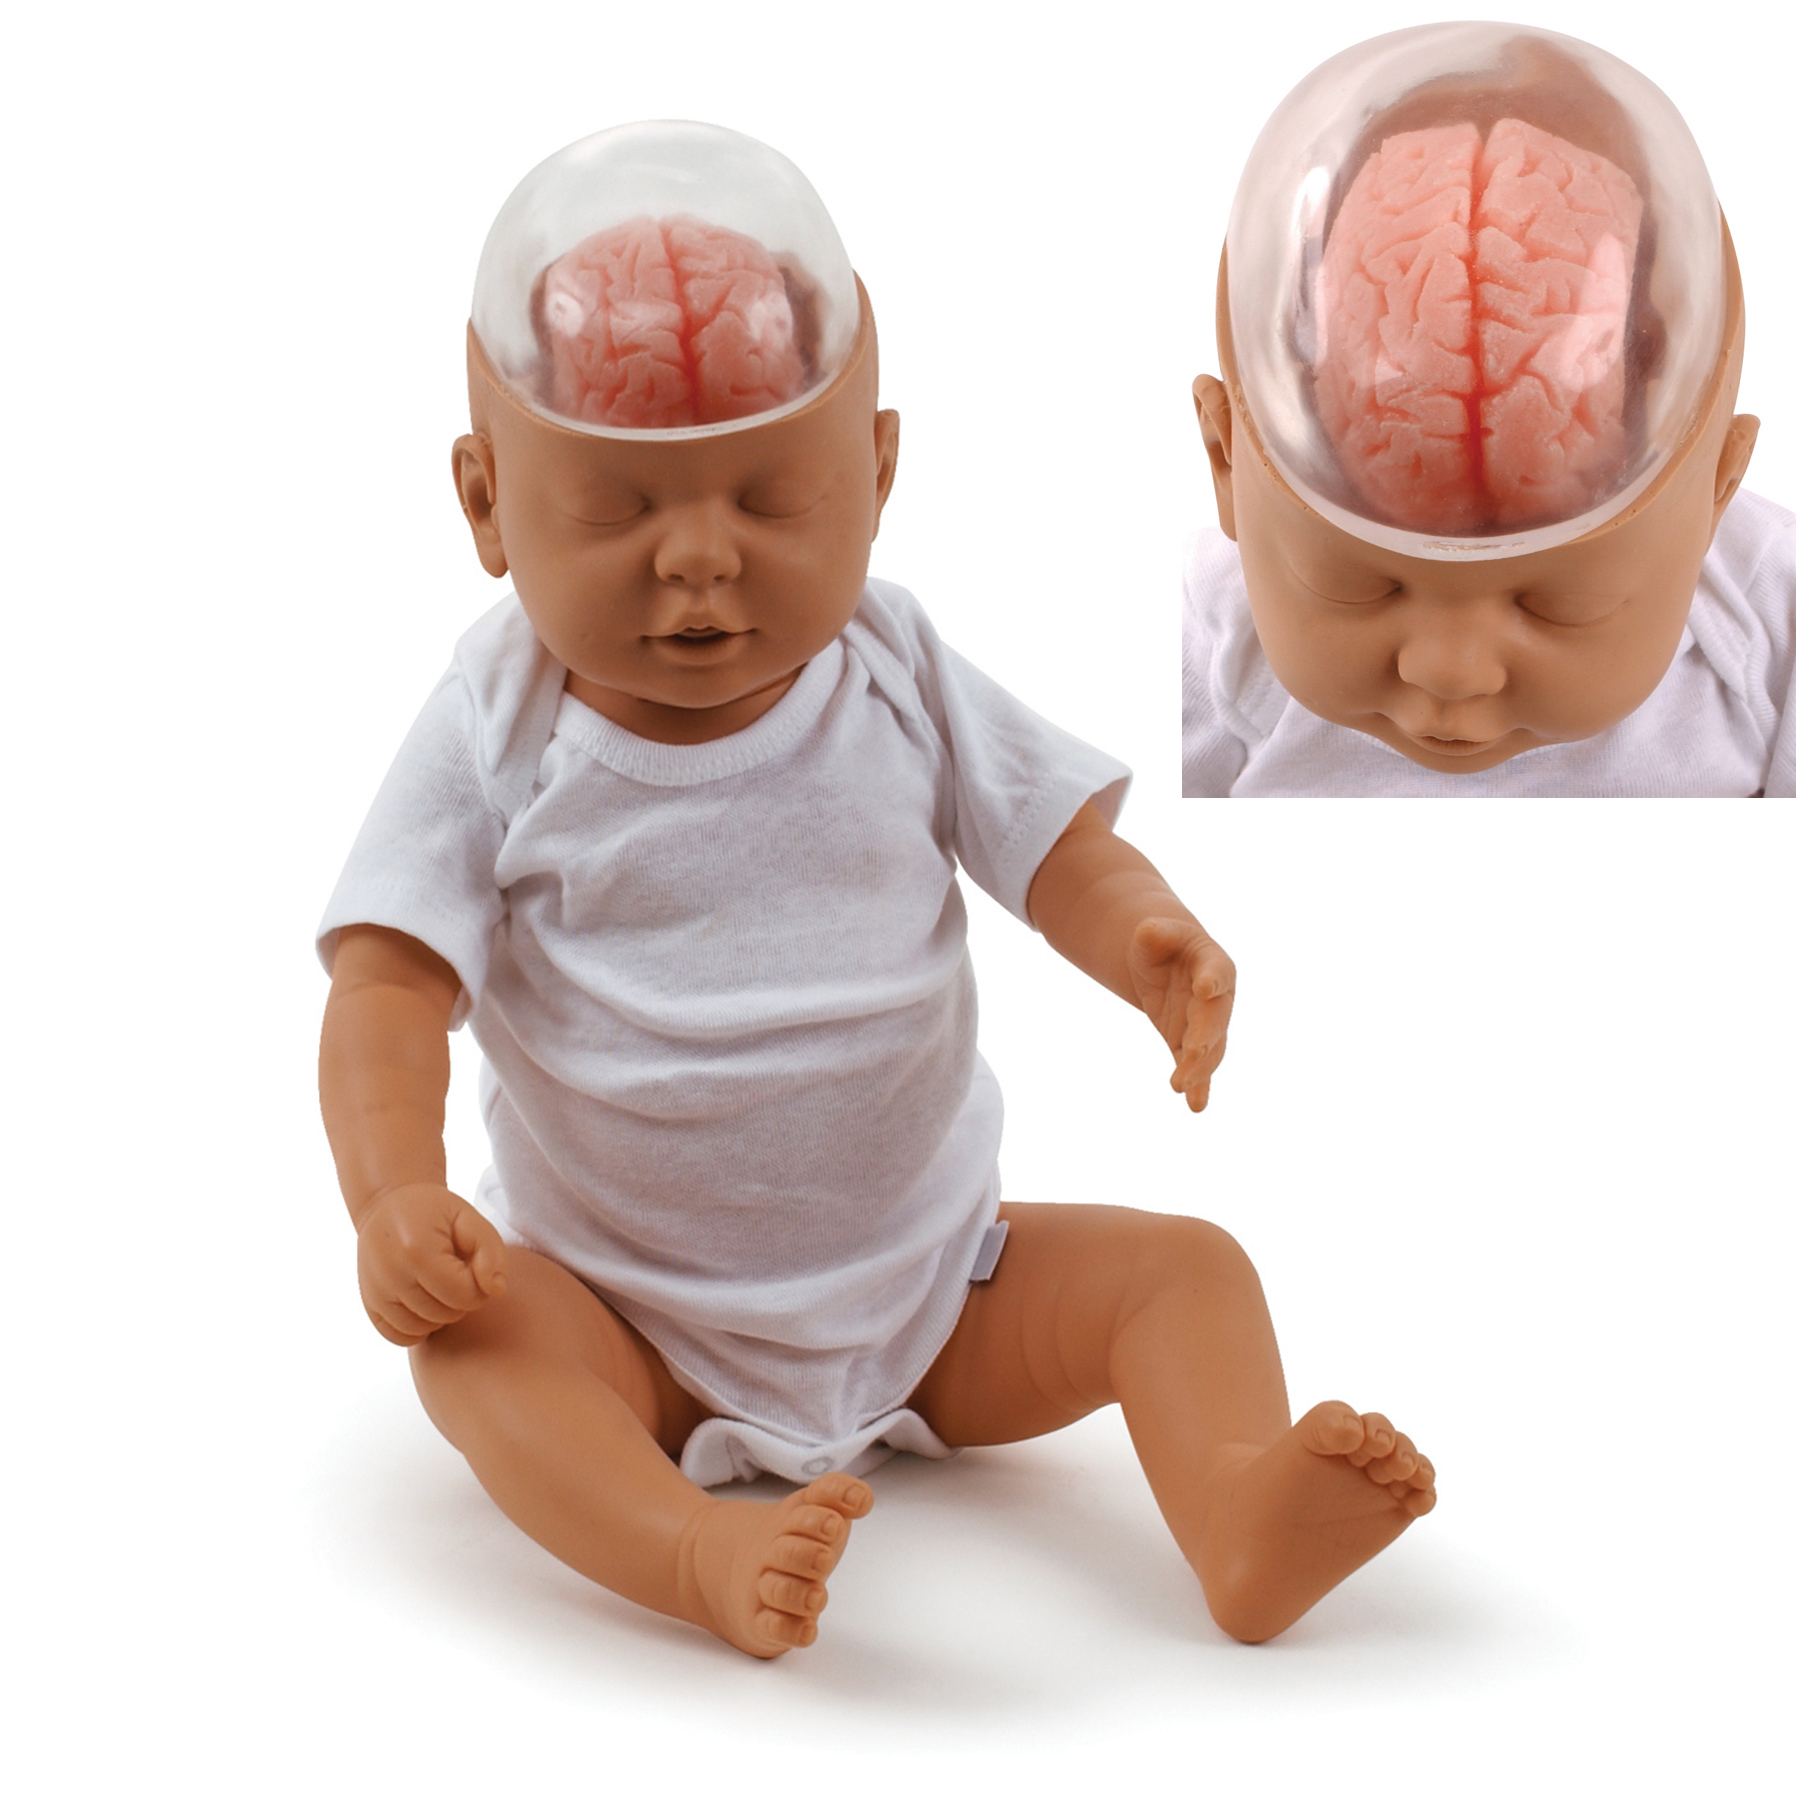 Shaken Baby Demonstration Model, beige baby doll wearing onesie with clear plastic head & pink brain inside, Health Edco, 53501